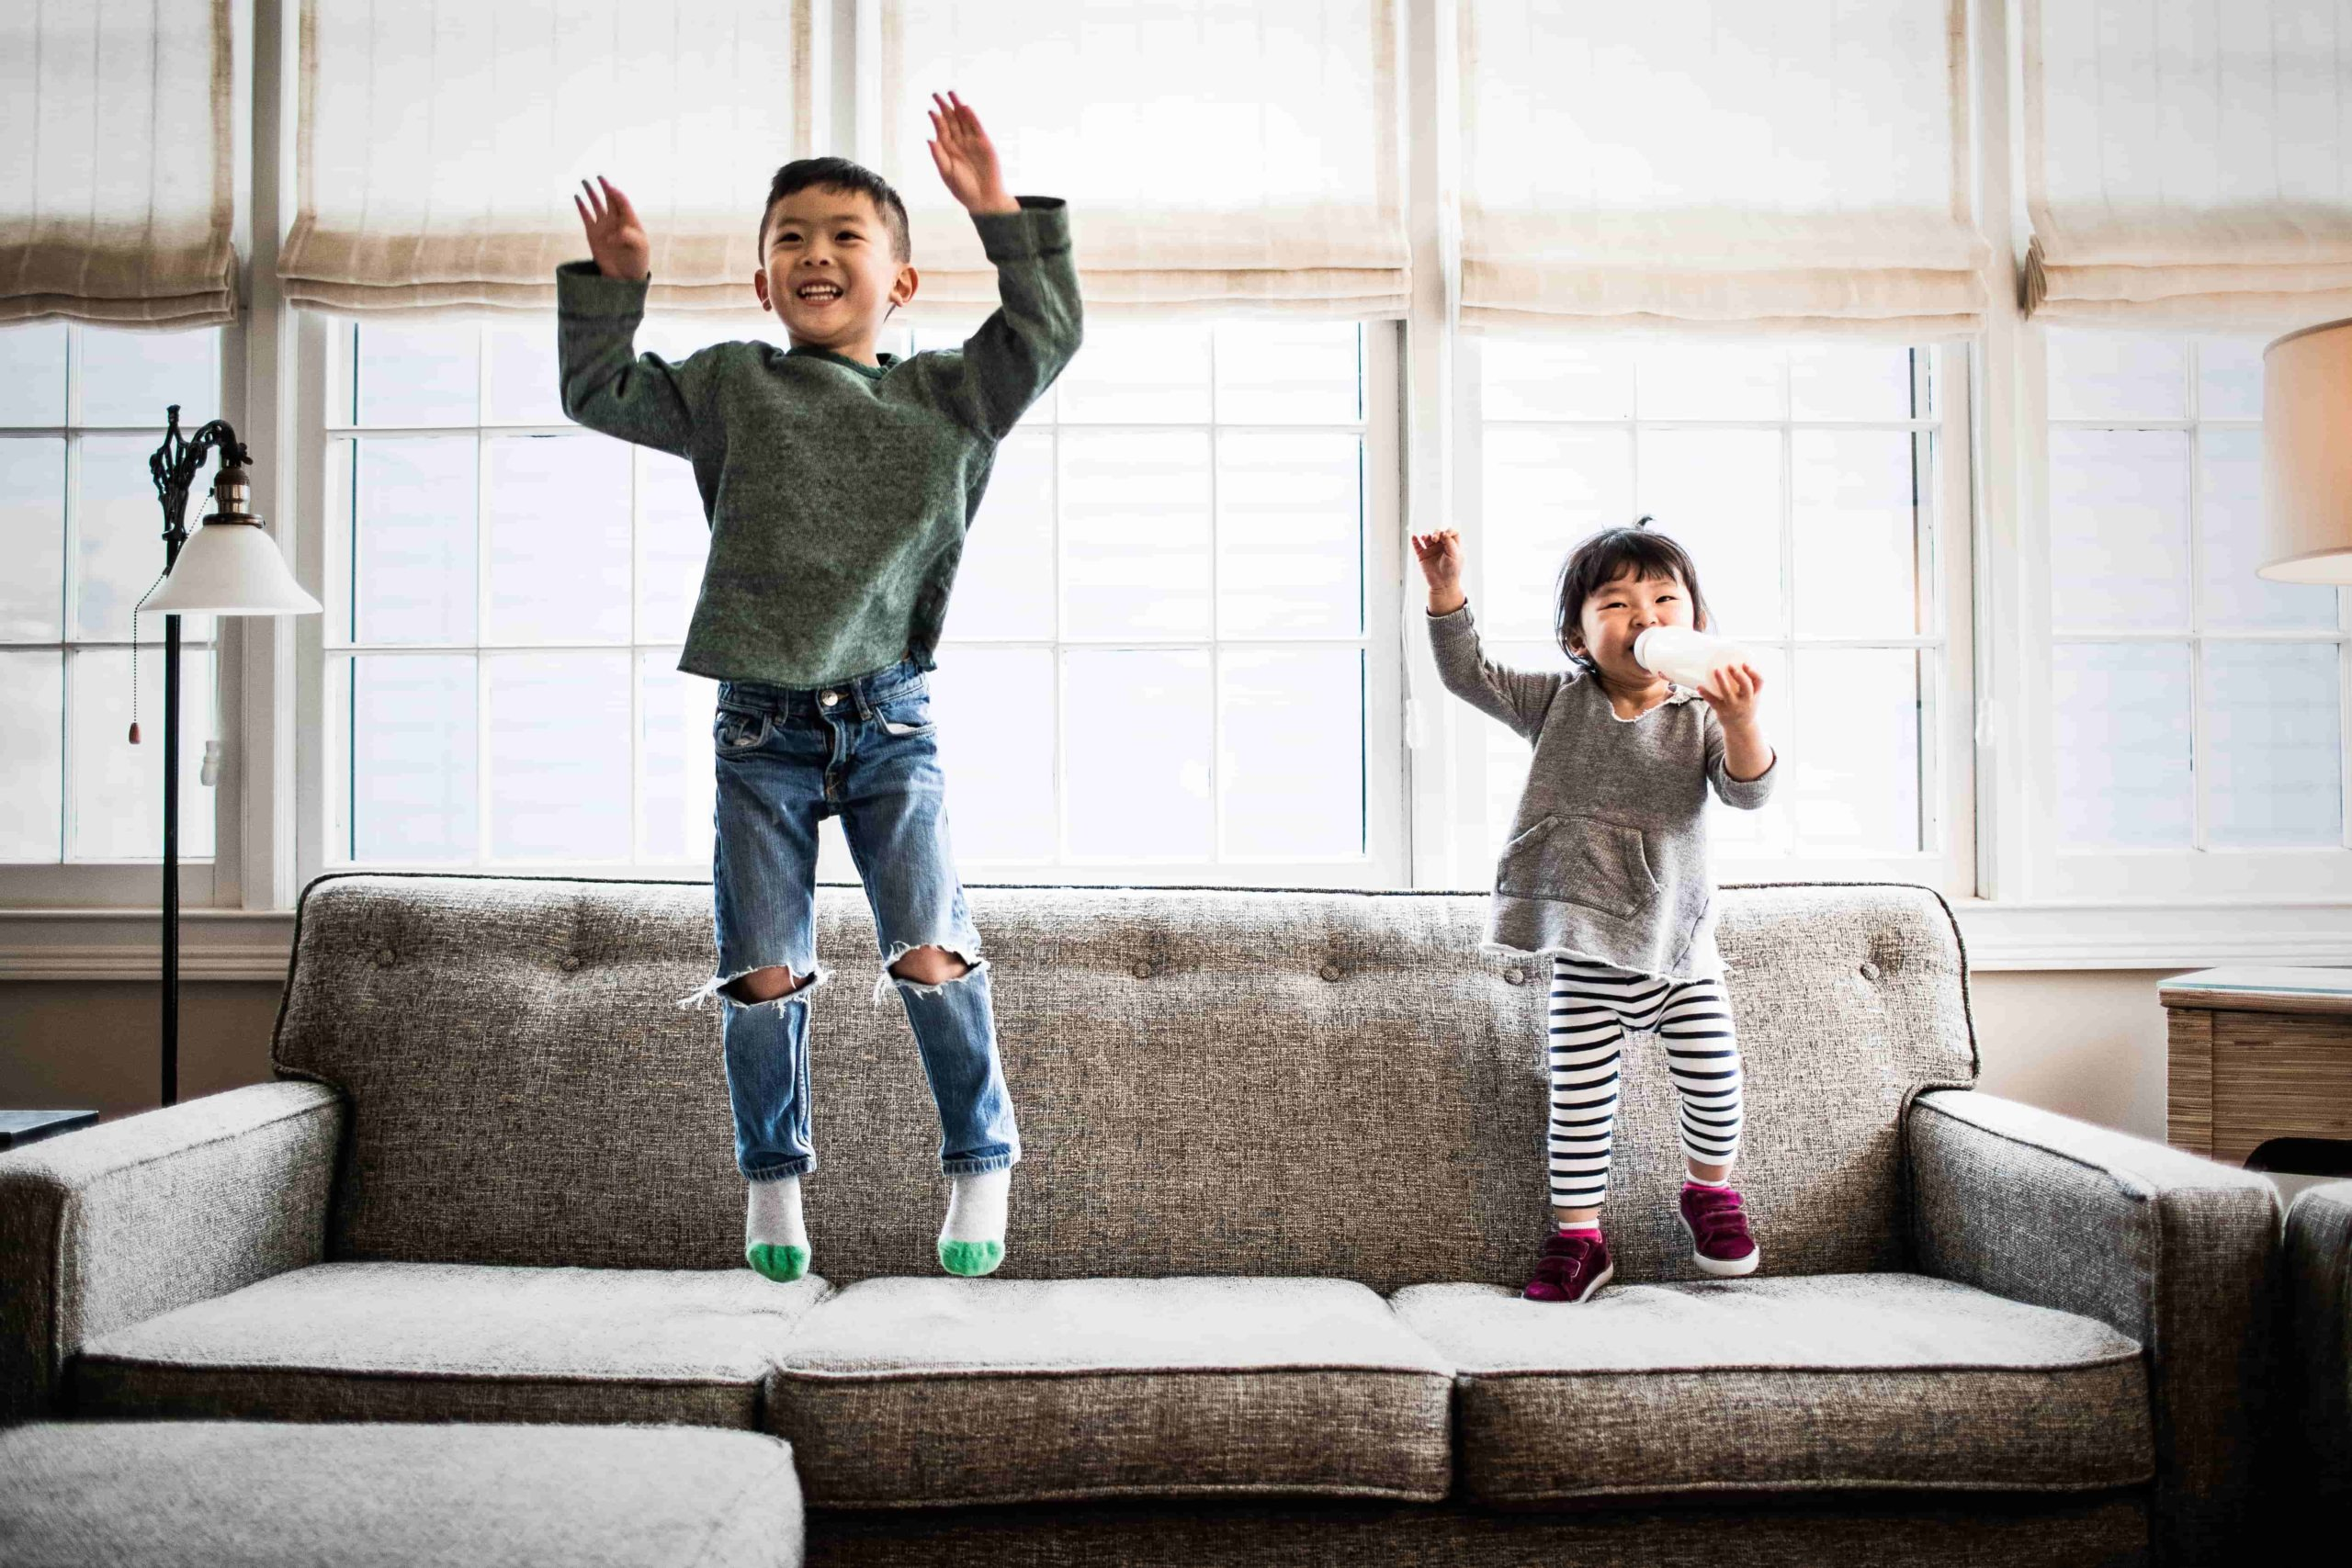 young boy and little sister laugh and bounce on a gray couch in the living room